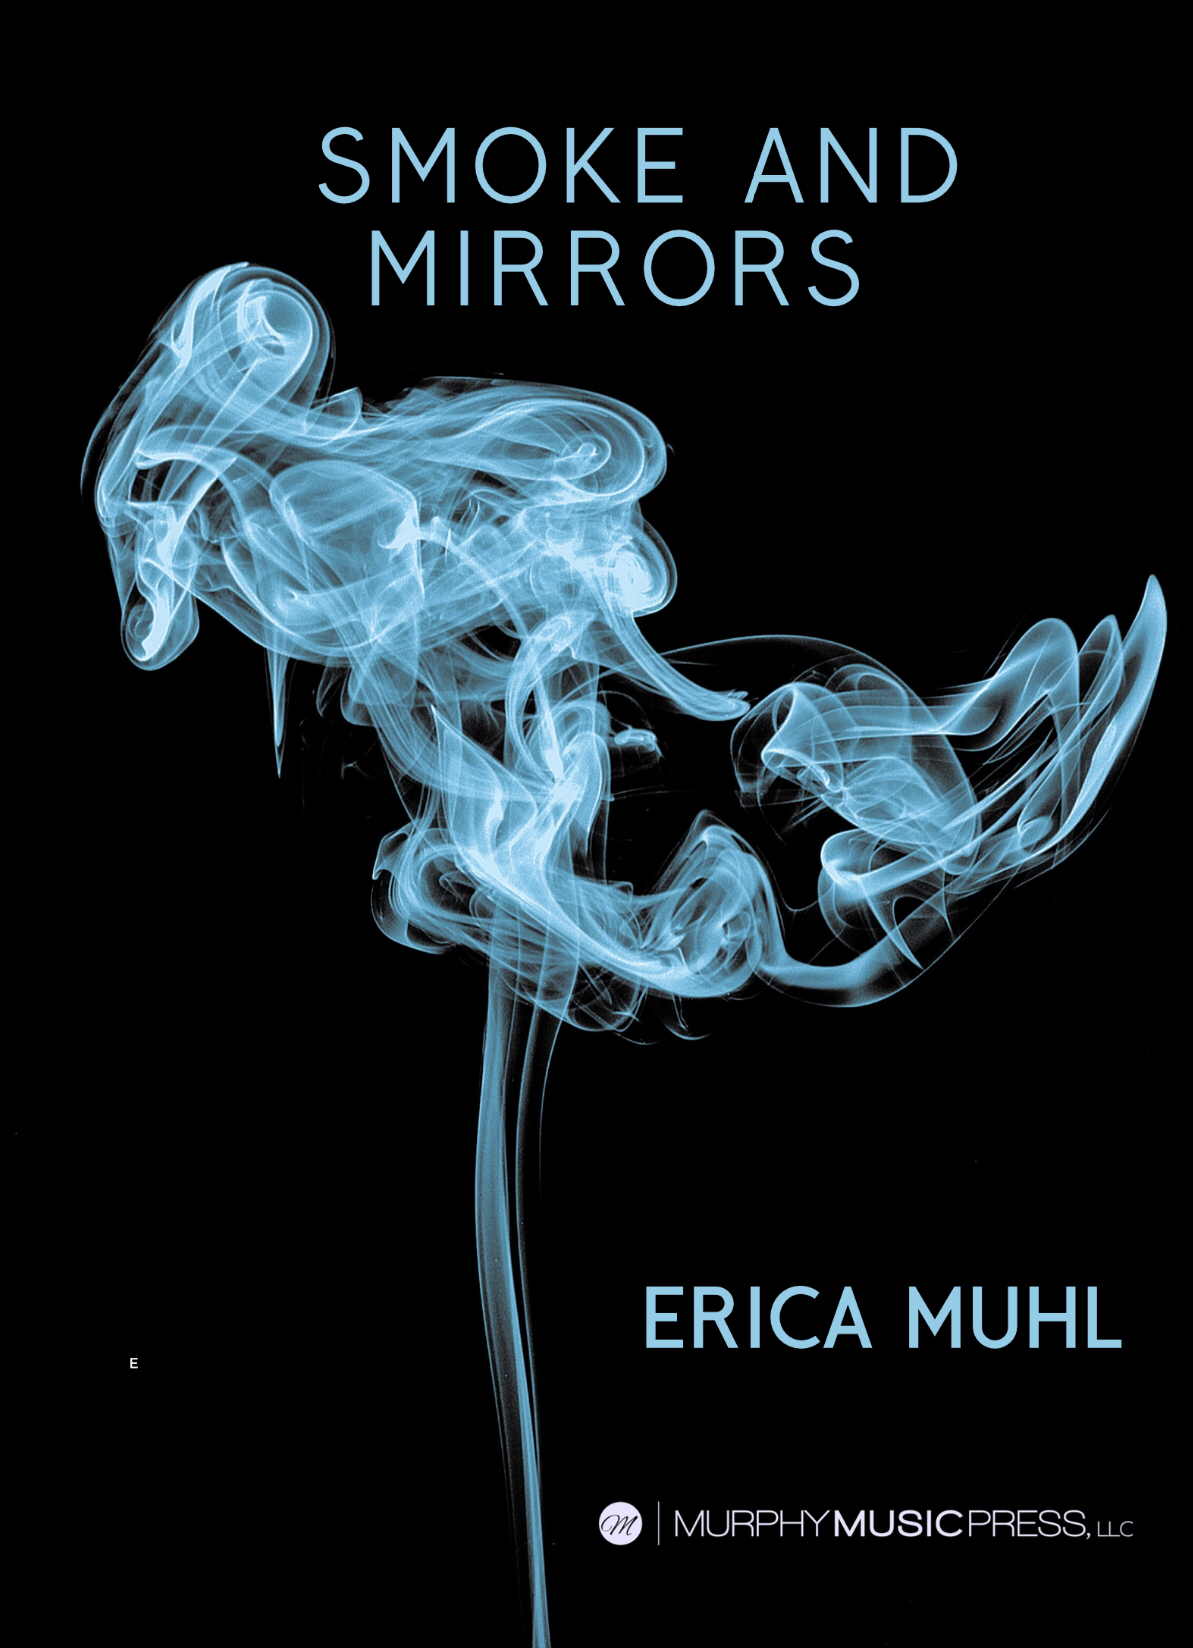 Smoke And Mirrors by Erica Muhl